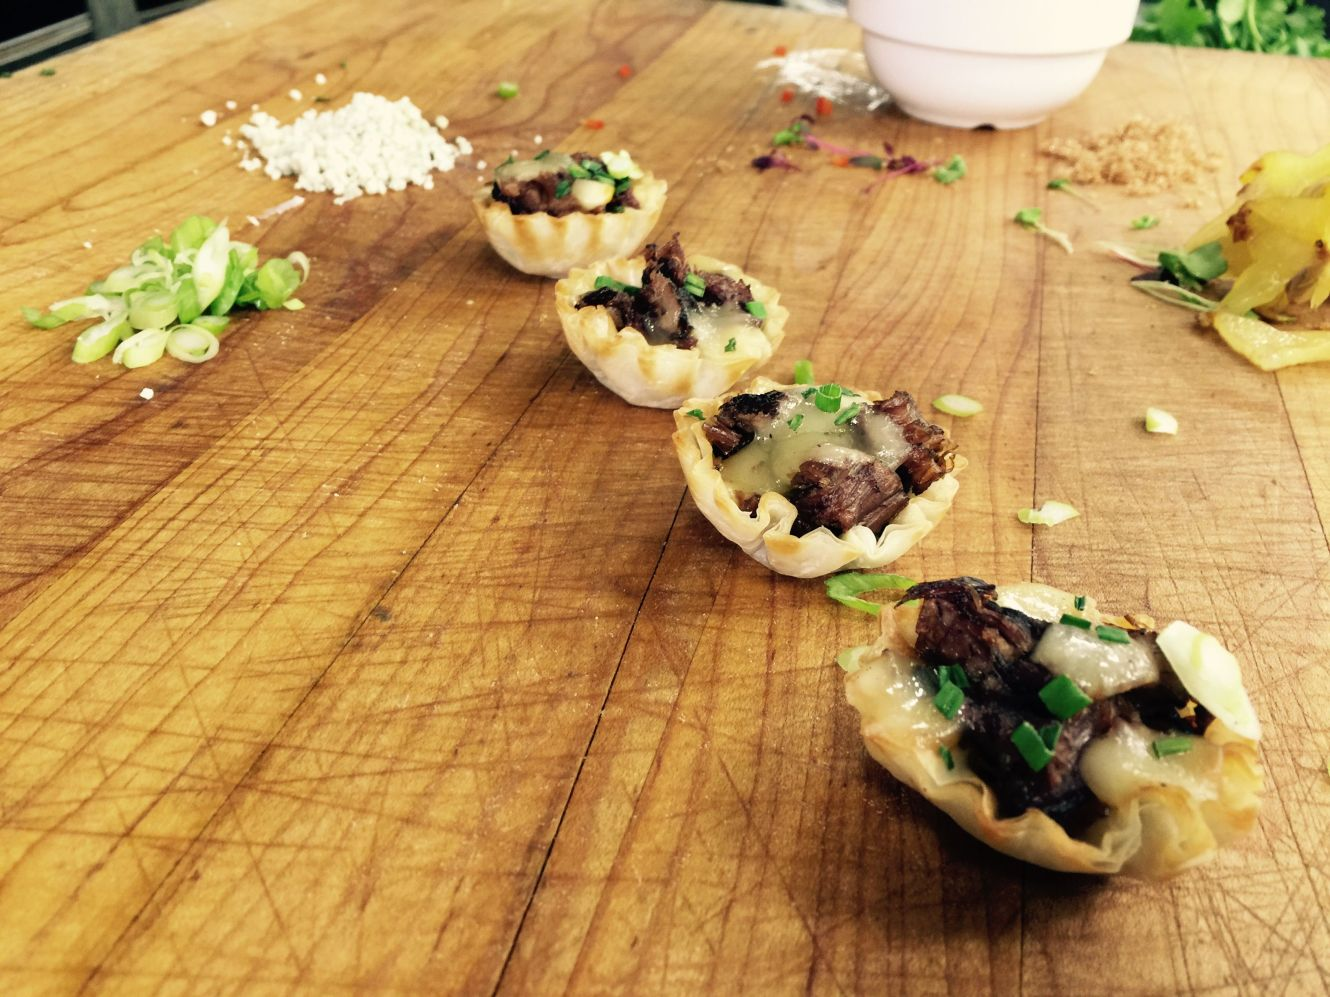 Braised Short Rib, Caramelized Onion and Fontina Cheese Tartlet